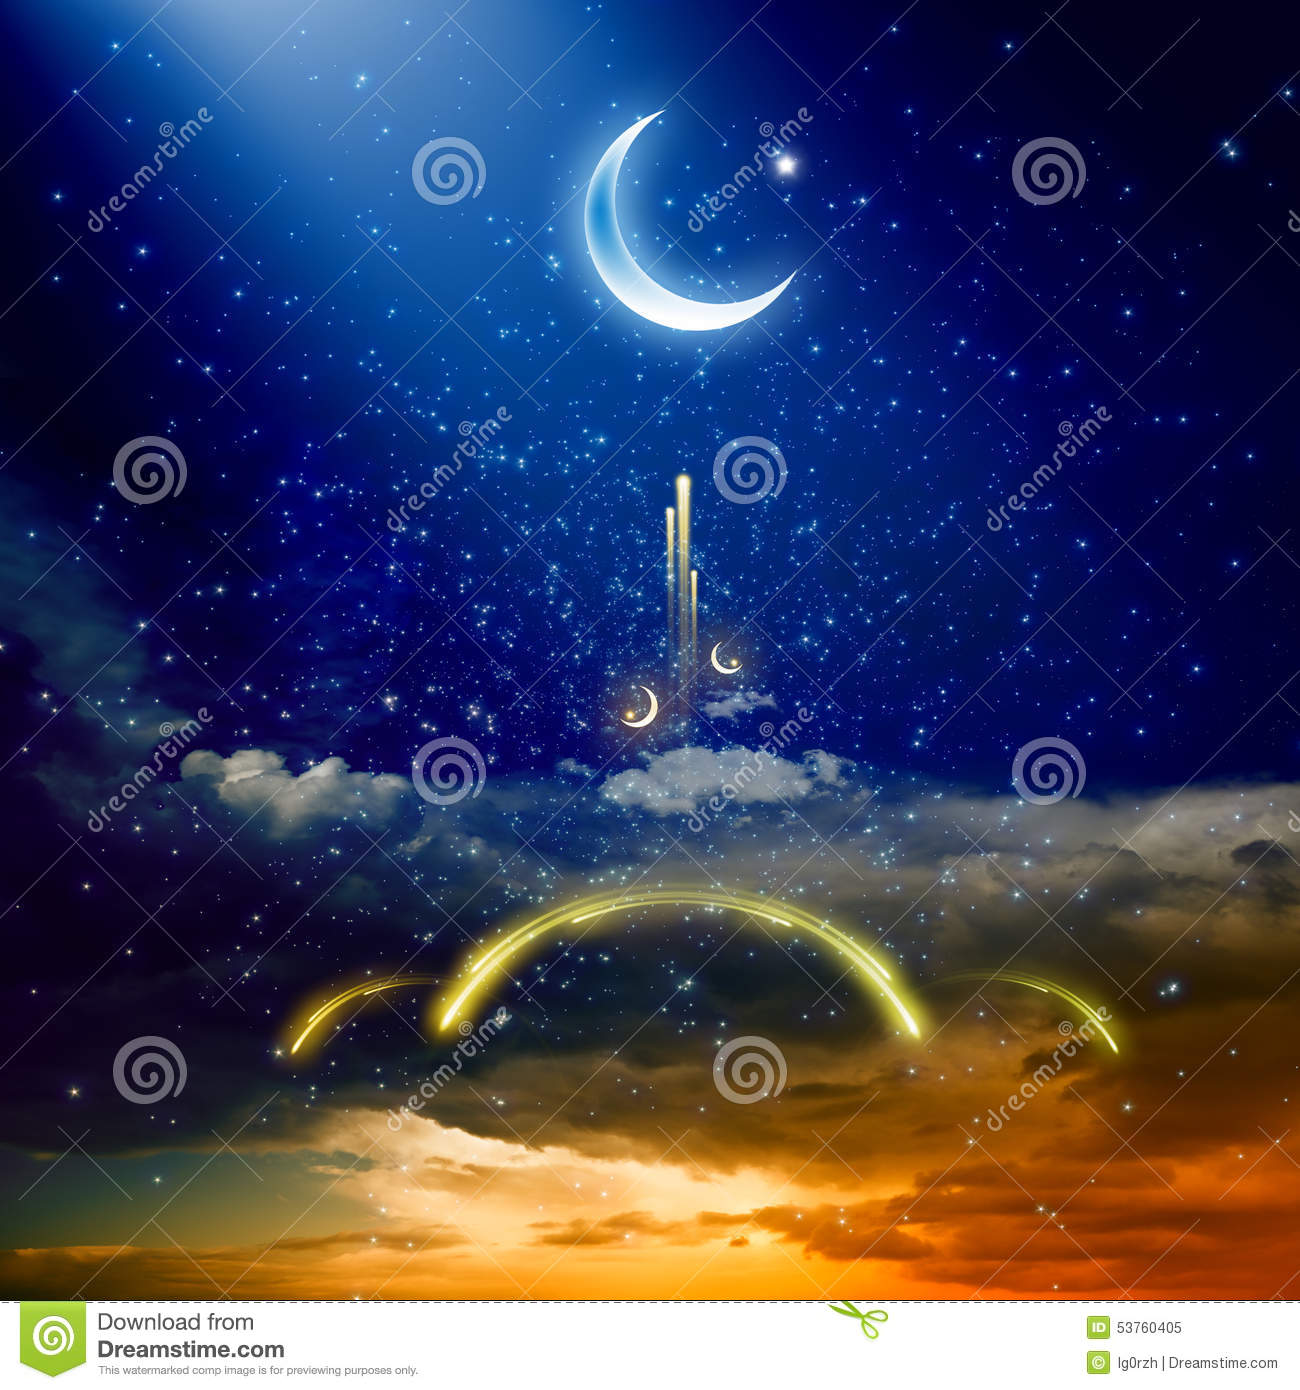 red moon dream meaning islam - photo #41